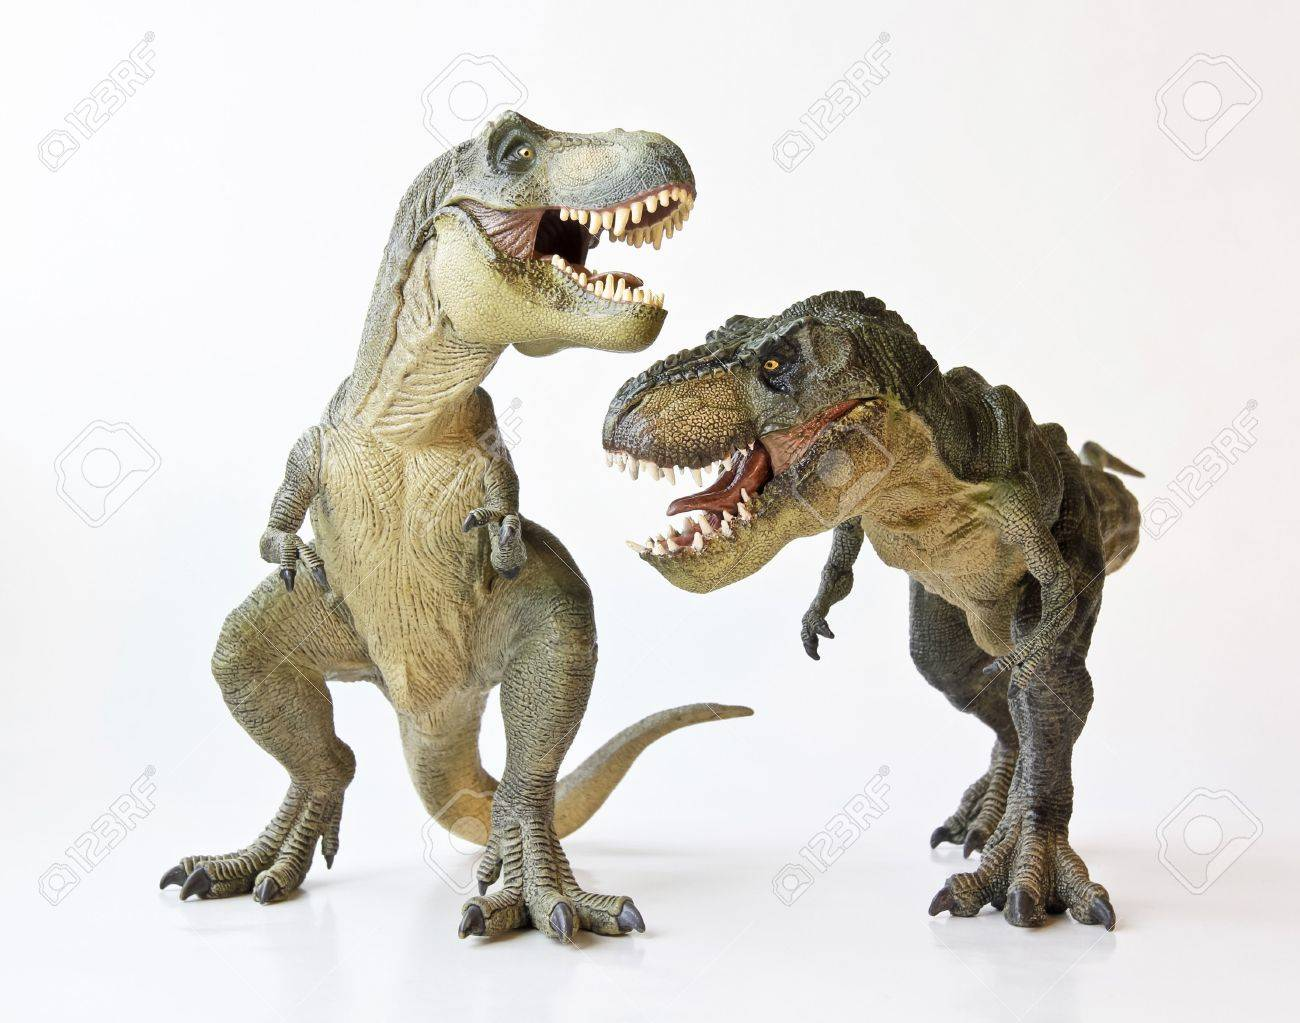 A Tyrannosaurus Rex Pair Face Off Against a White Background - 17588904